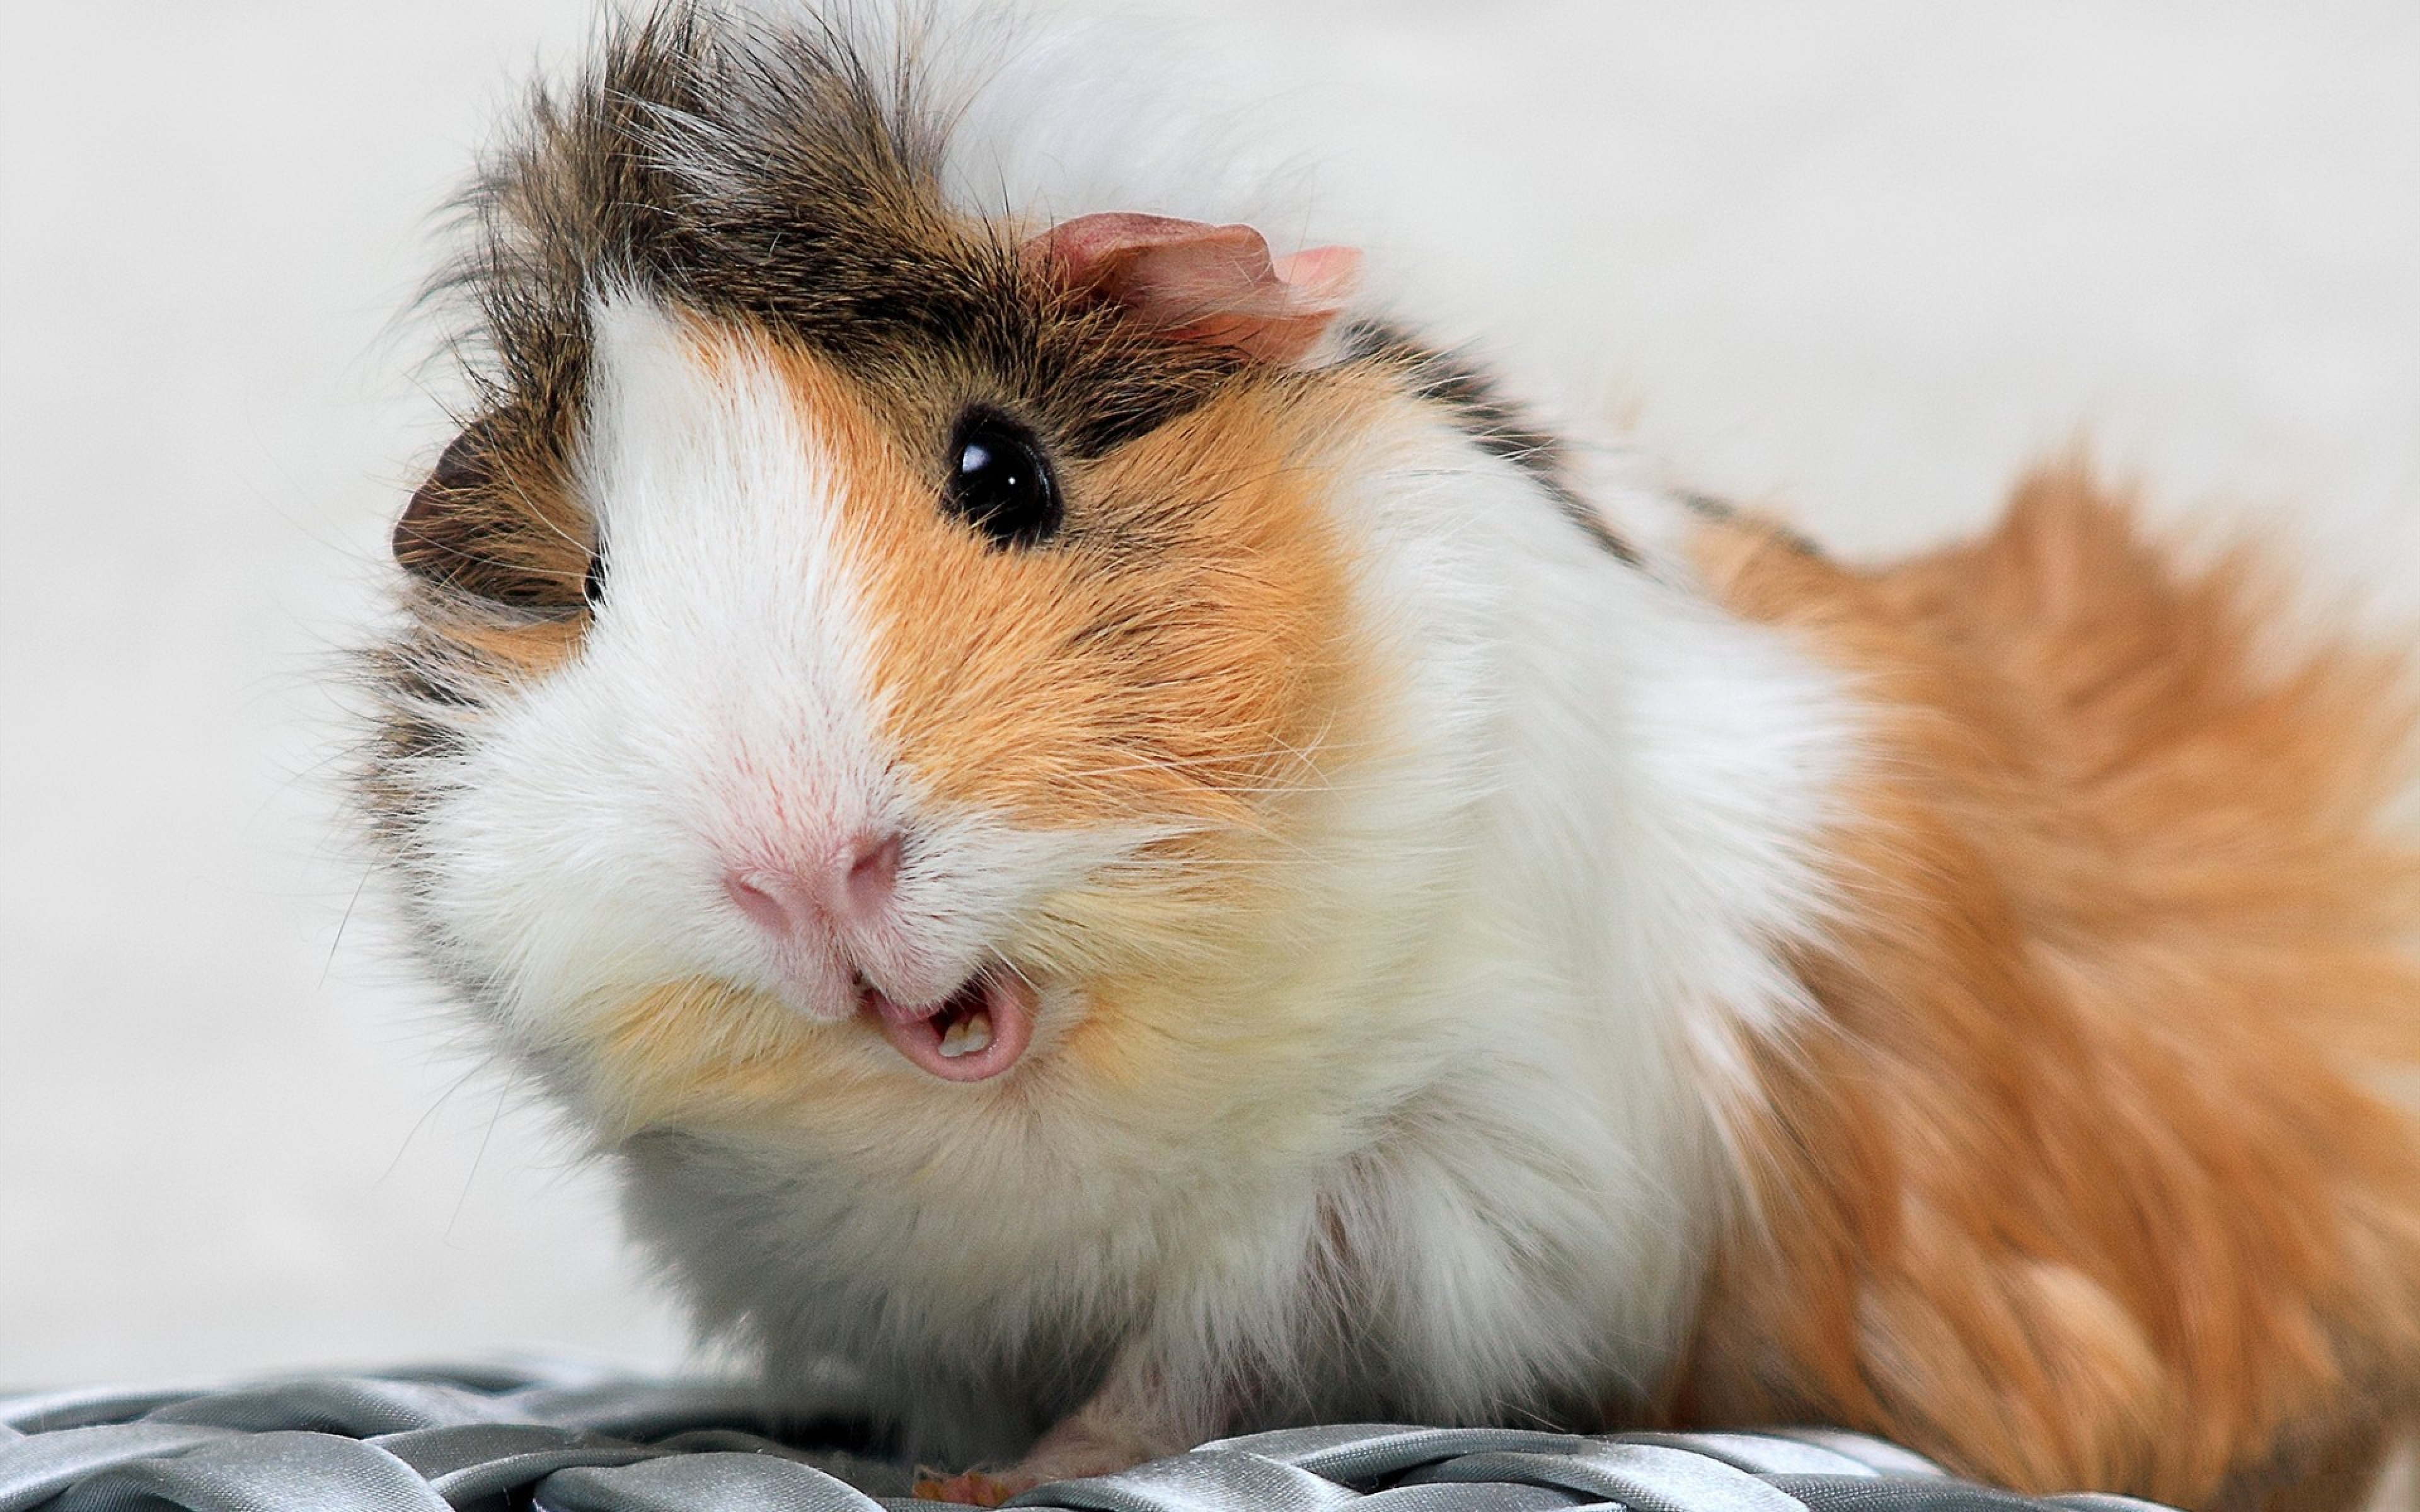 4K Guinea Pig Wallpapers High Quality Download 3840x2400